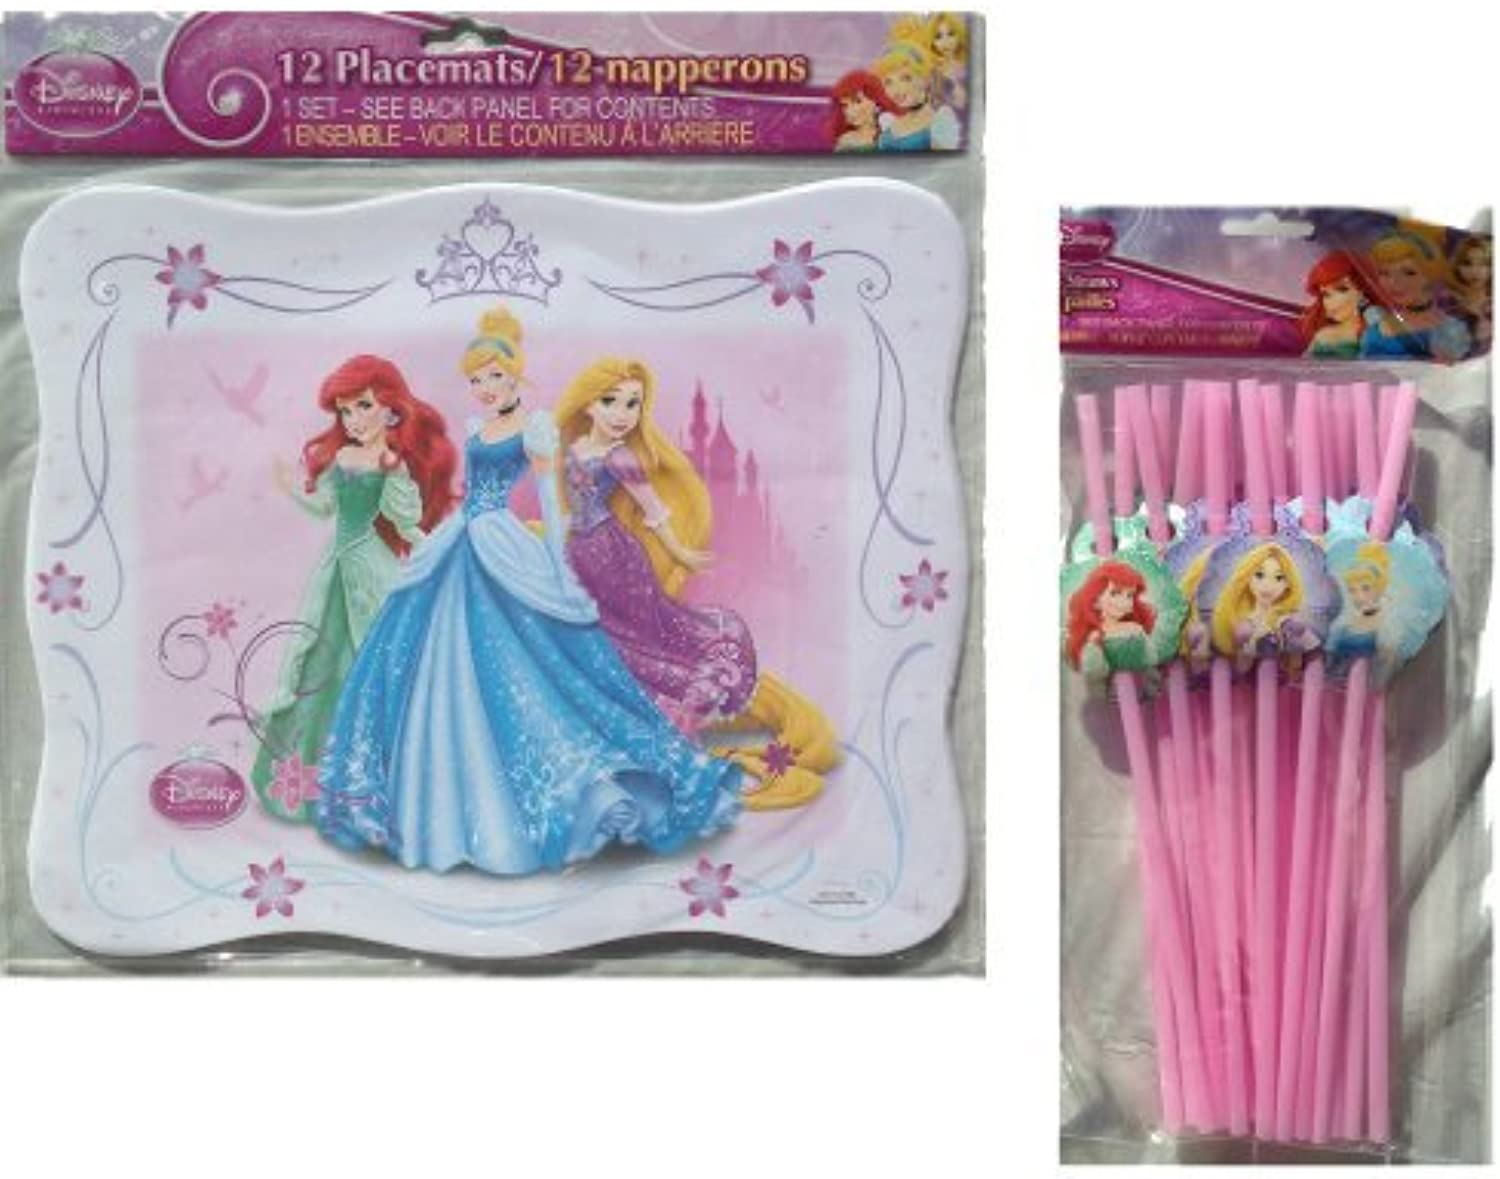 Disney Princess 12 Pack Paper Placemats(13 x10.5 ), Disney Princess 18 Pack Bendy Straws with Printed Princess Charactersdisney Princess Party Decorations by peach tree playthings